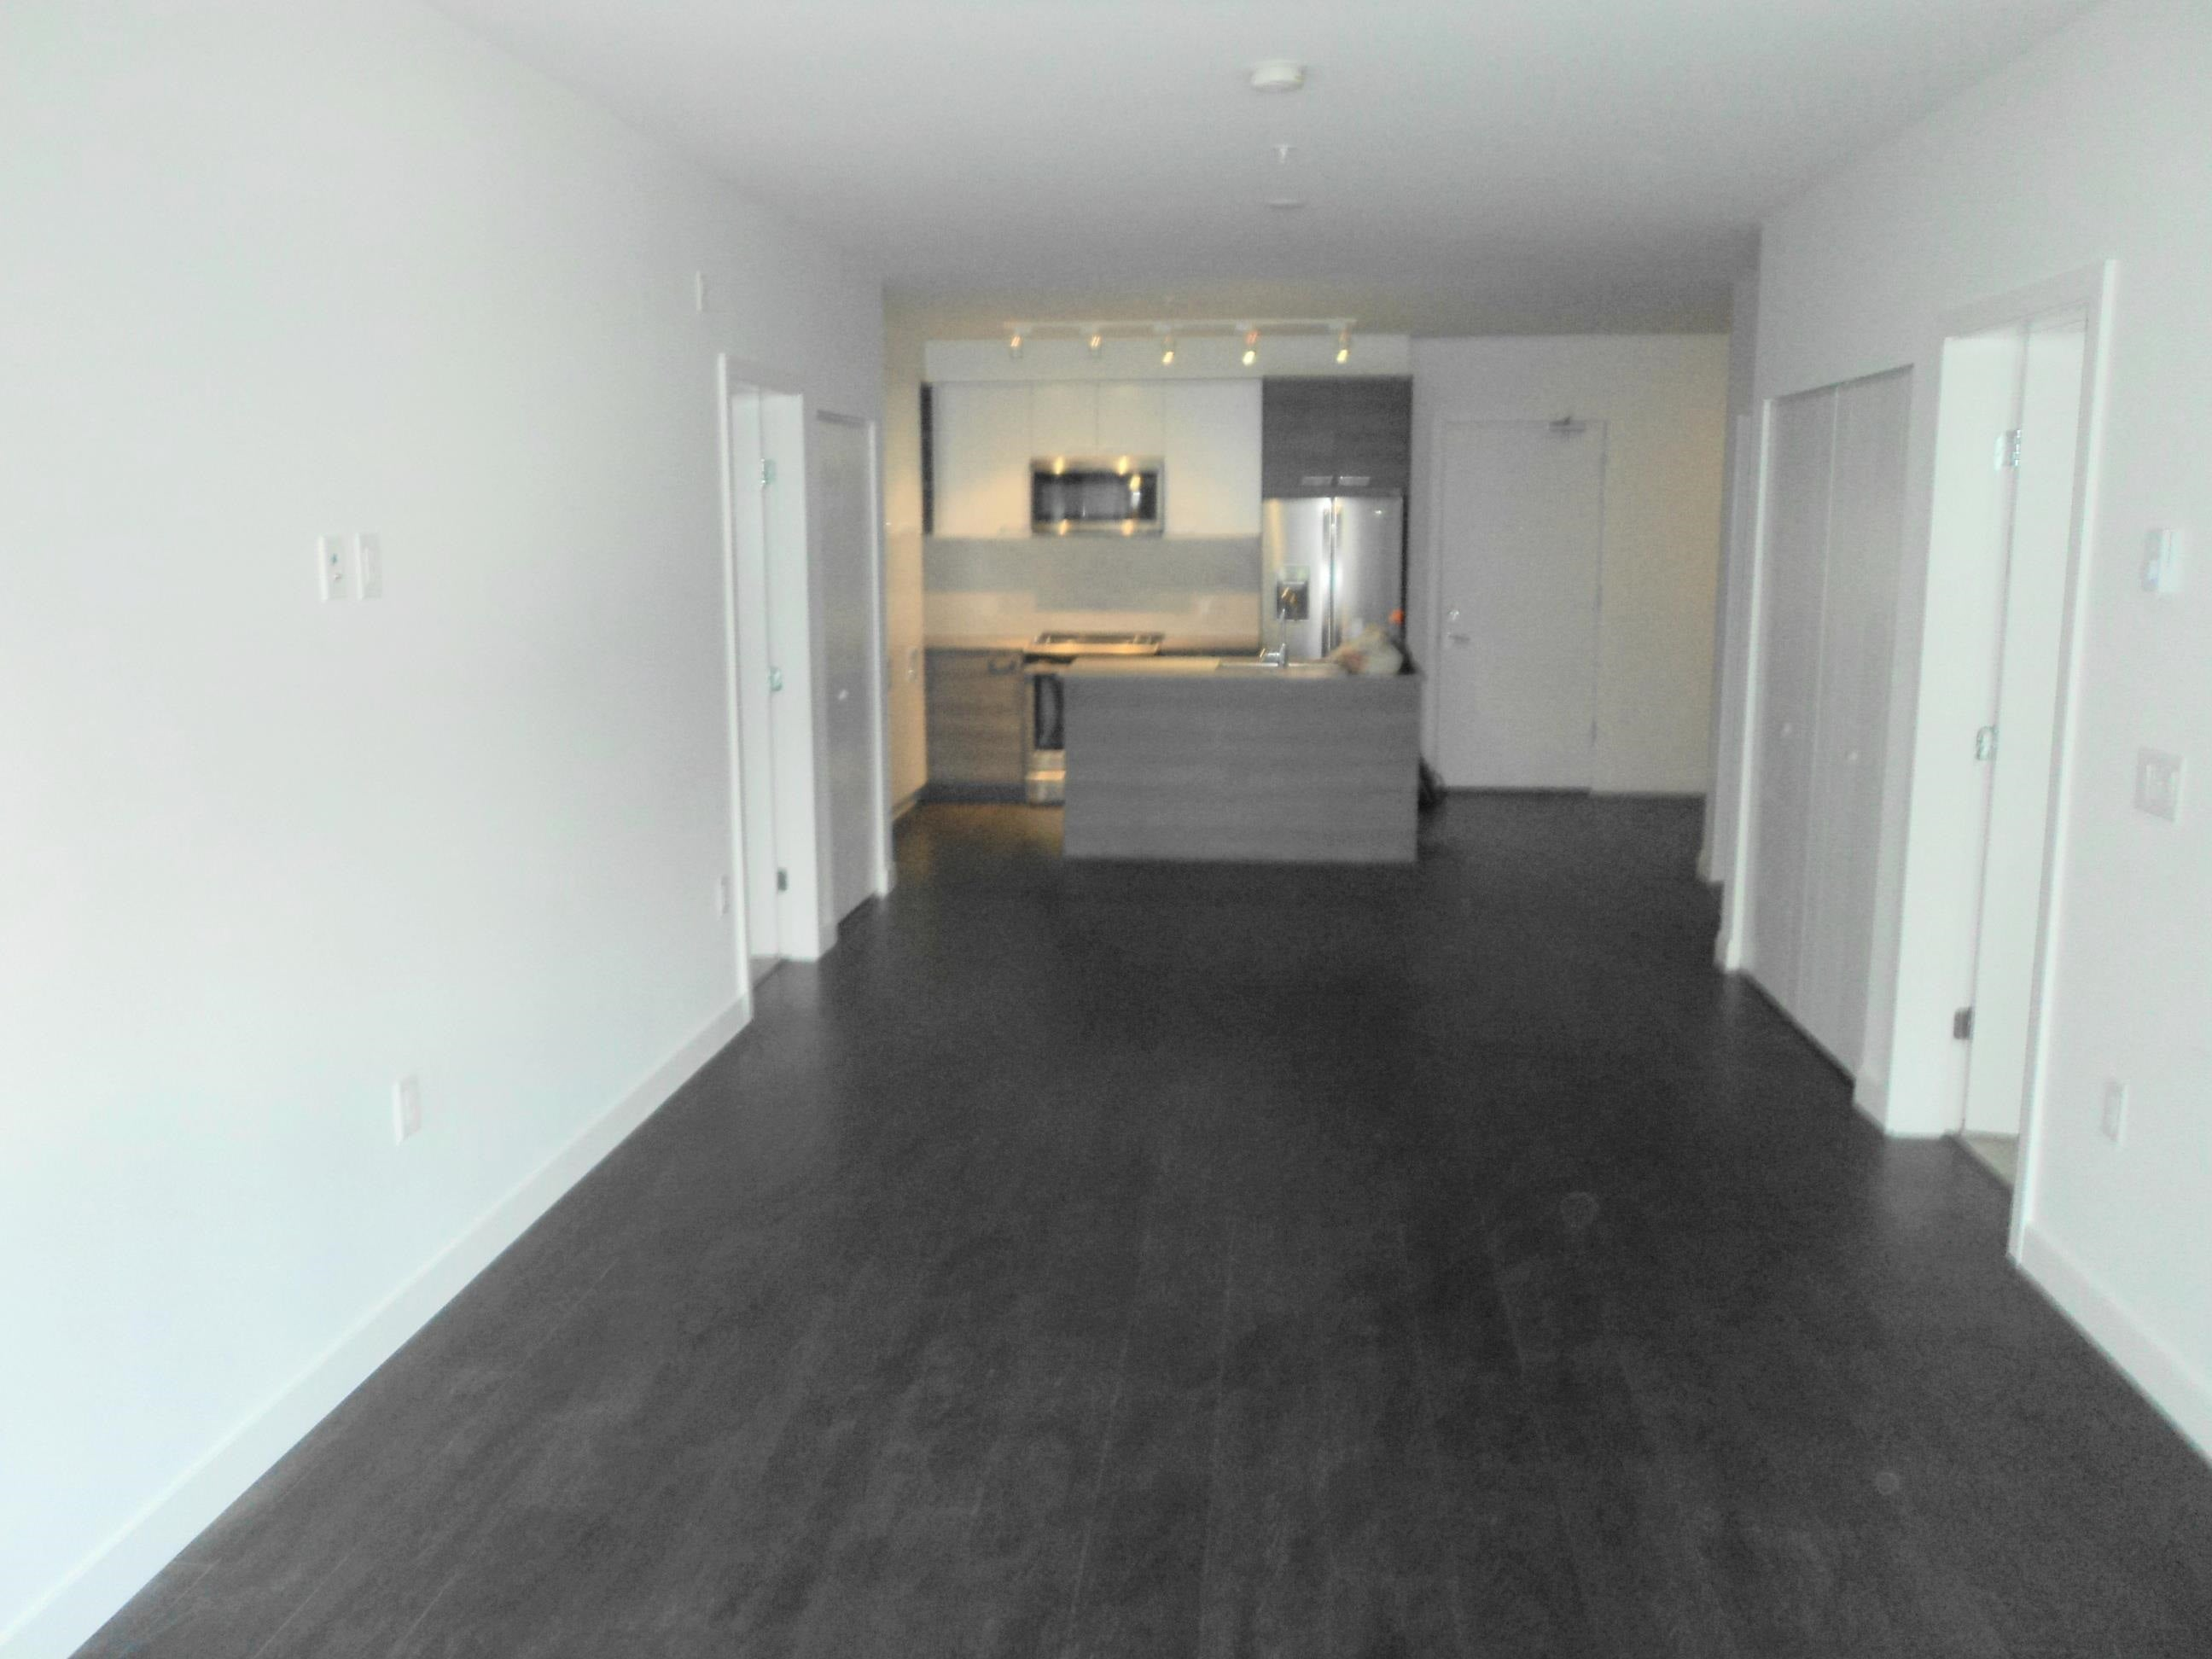 207 10581 140 STREET - Whalley Apartment/Condo for sale, 2 Bedrooms (R2615061) - #4